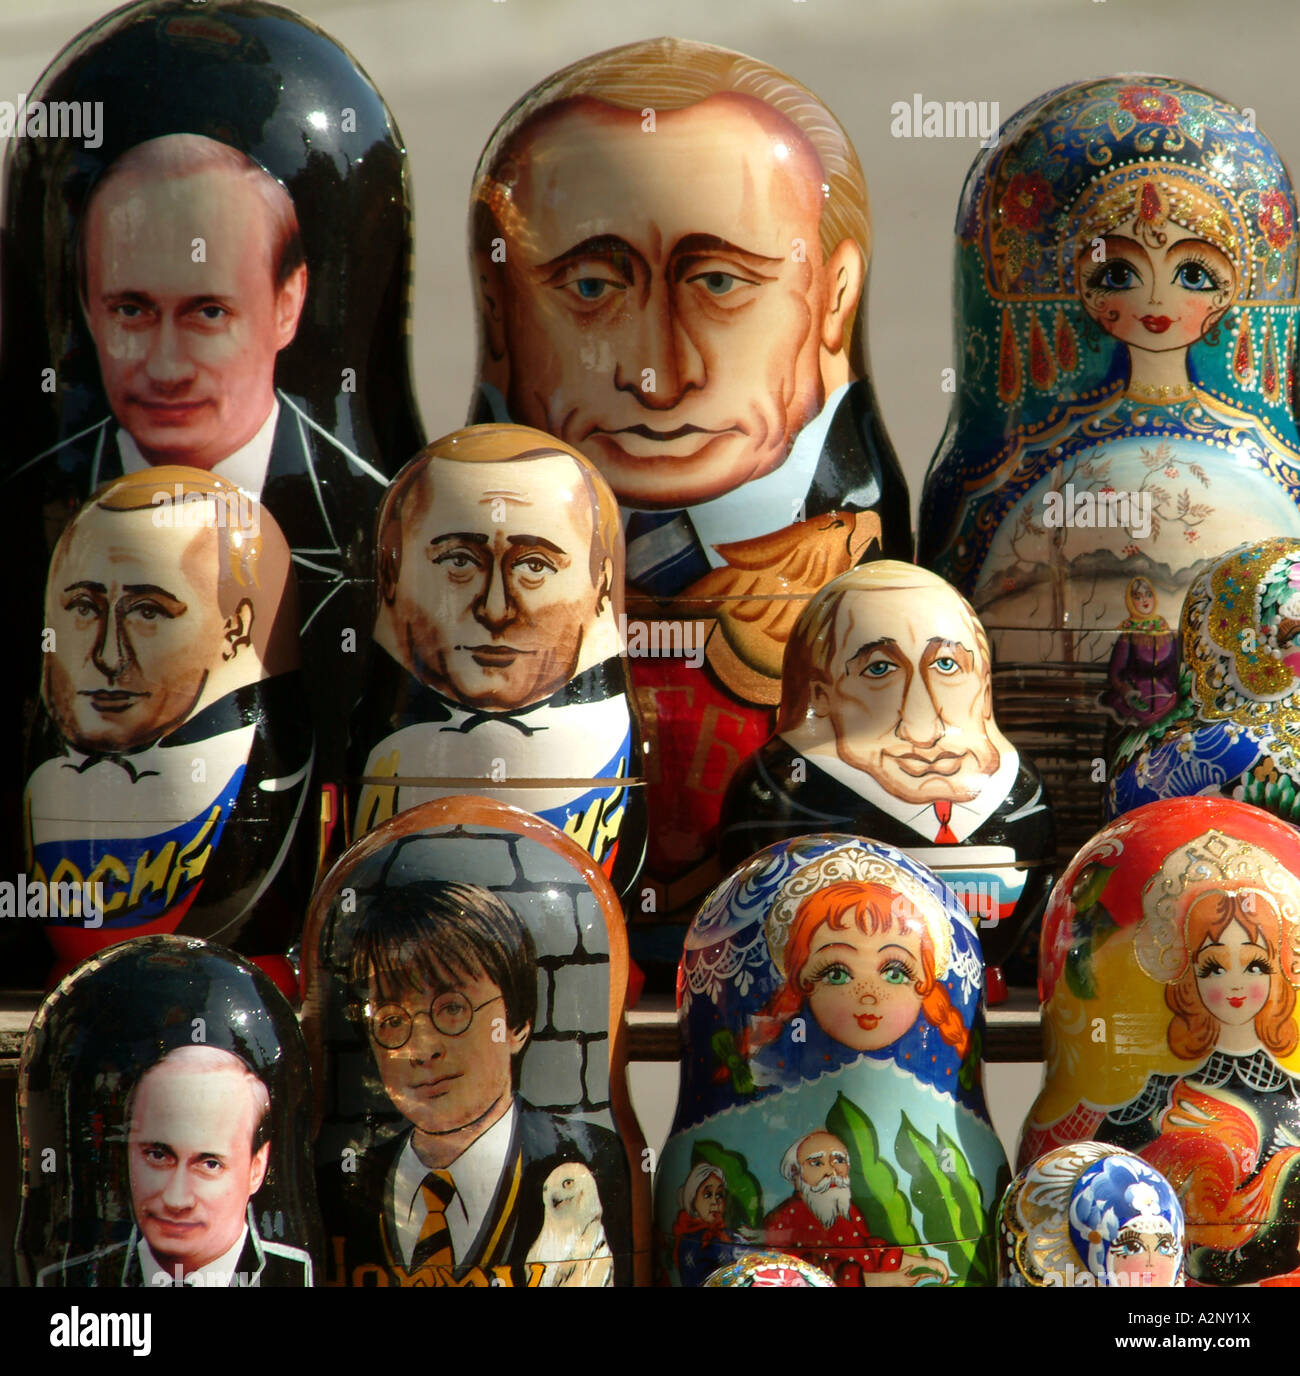 President Putin portrait appears as a wooden Russian doll Seen here on a tourist souvenir stall in Moscow - Stock Image